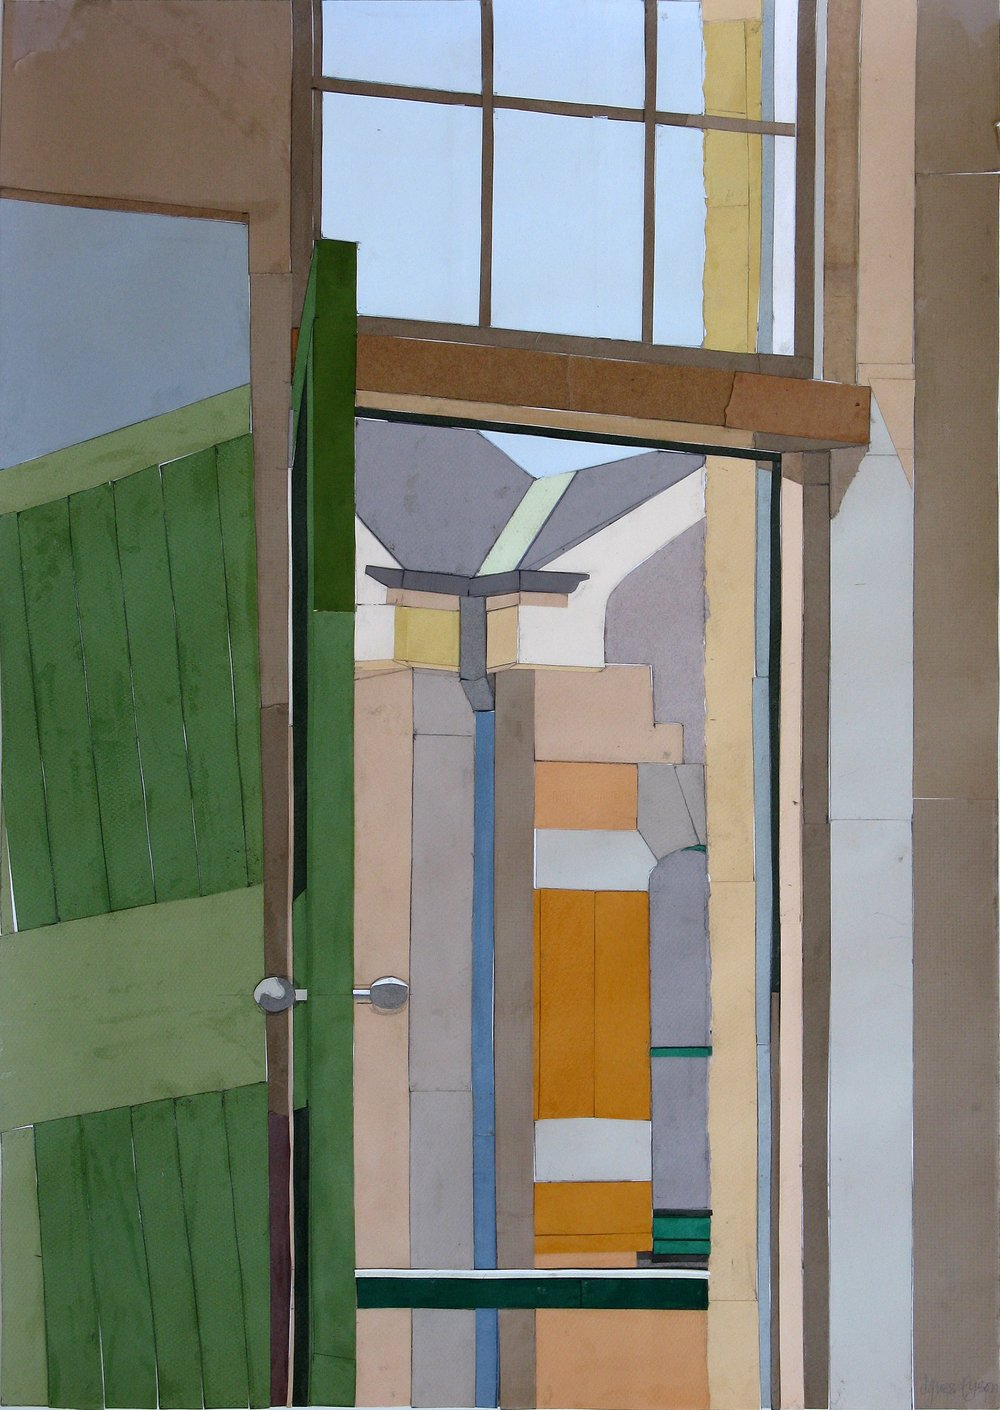 Looking Out #2, mixed media on paper, 69 x 50cm, 2008